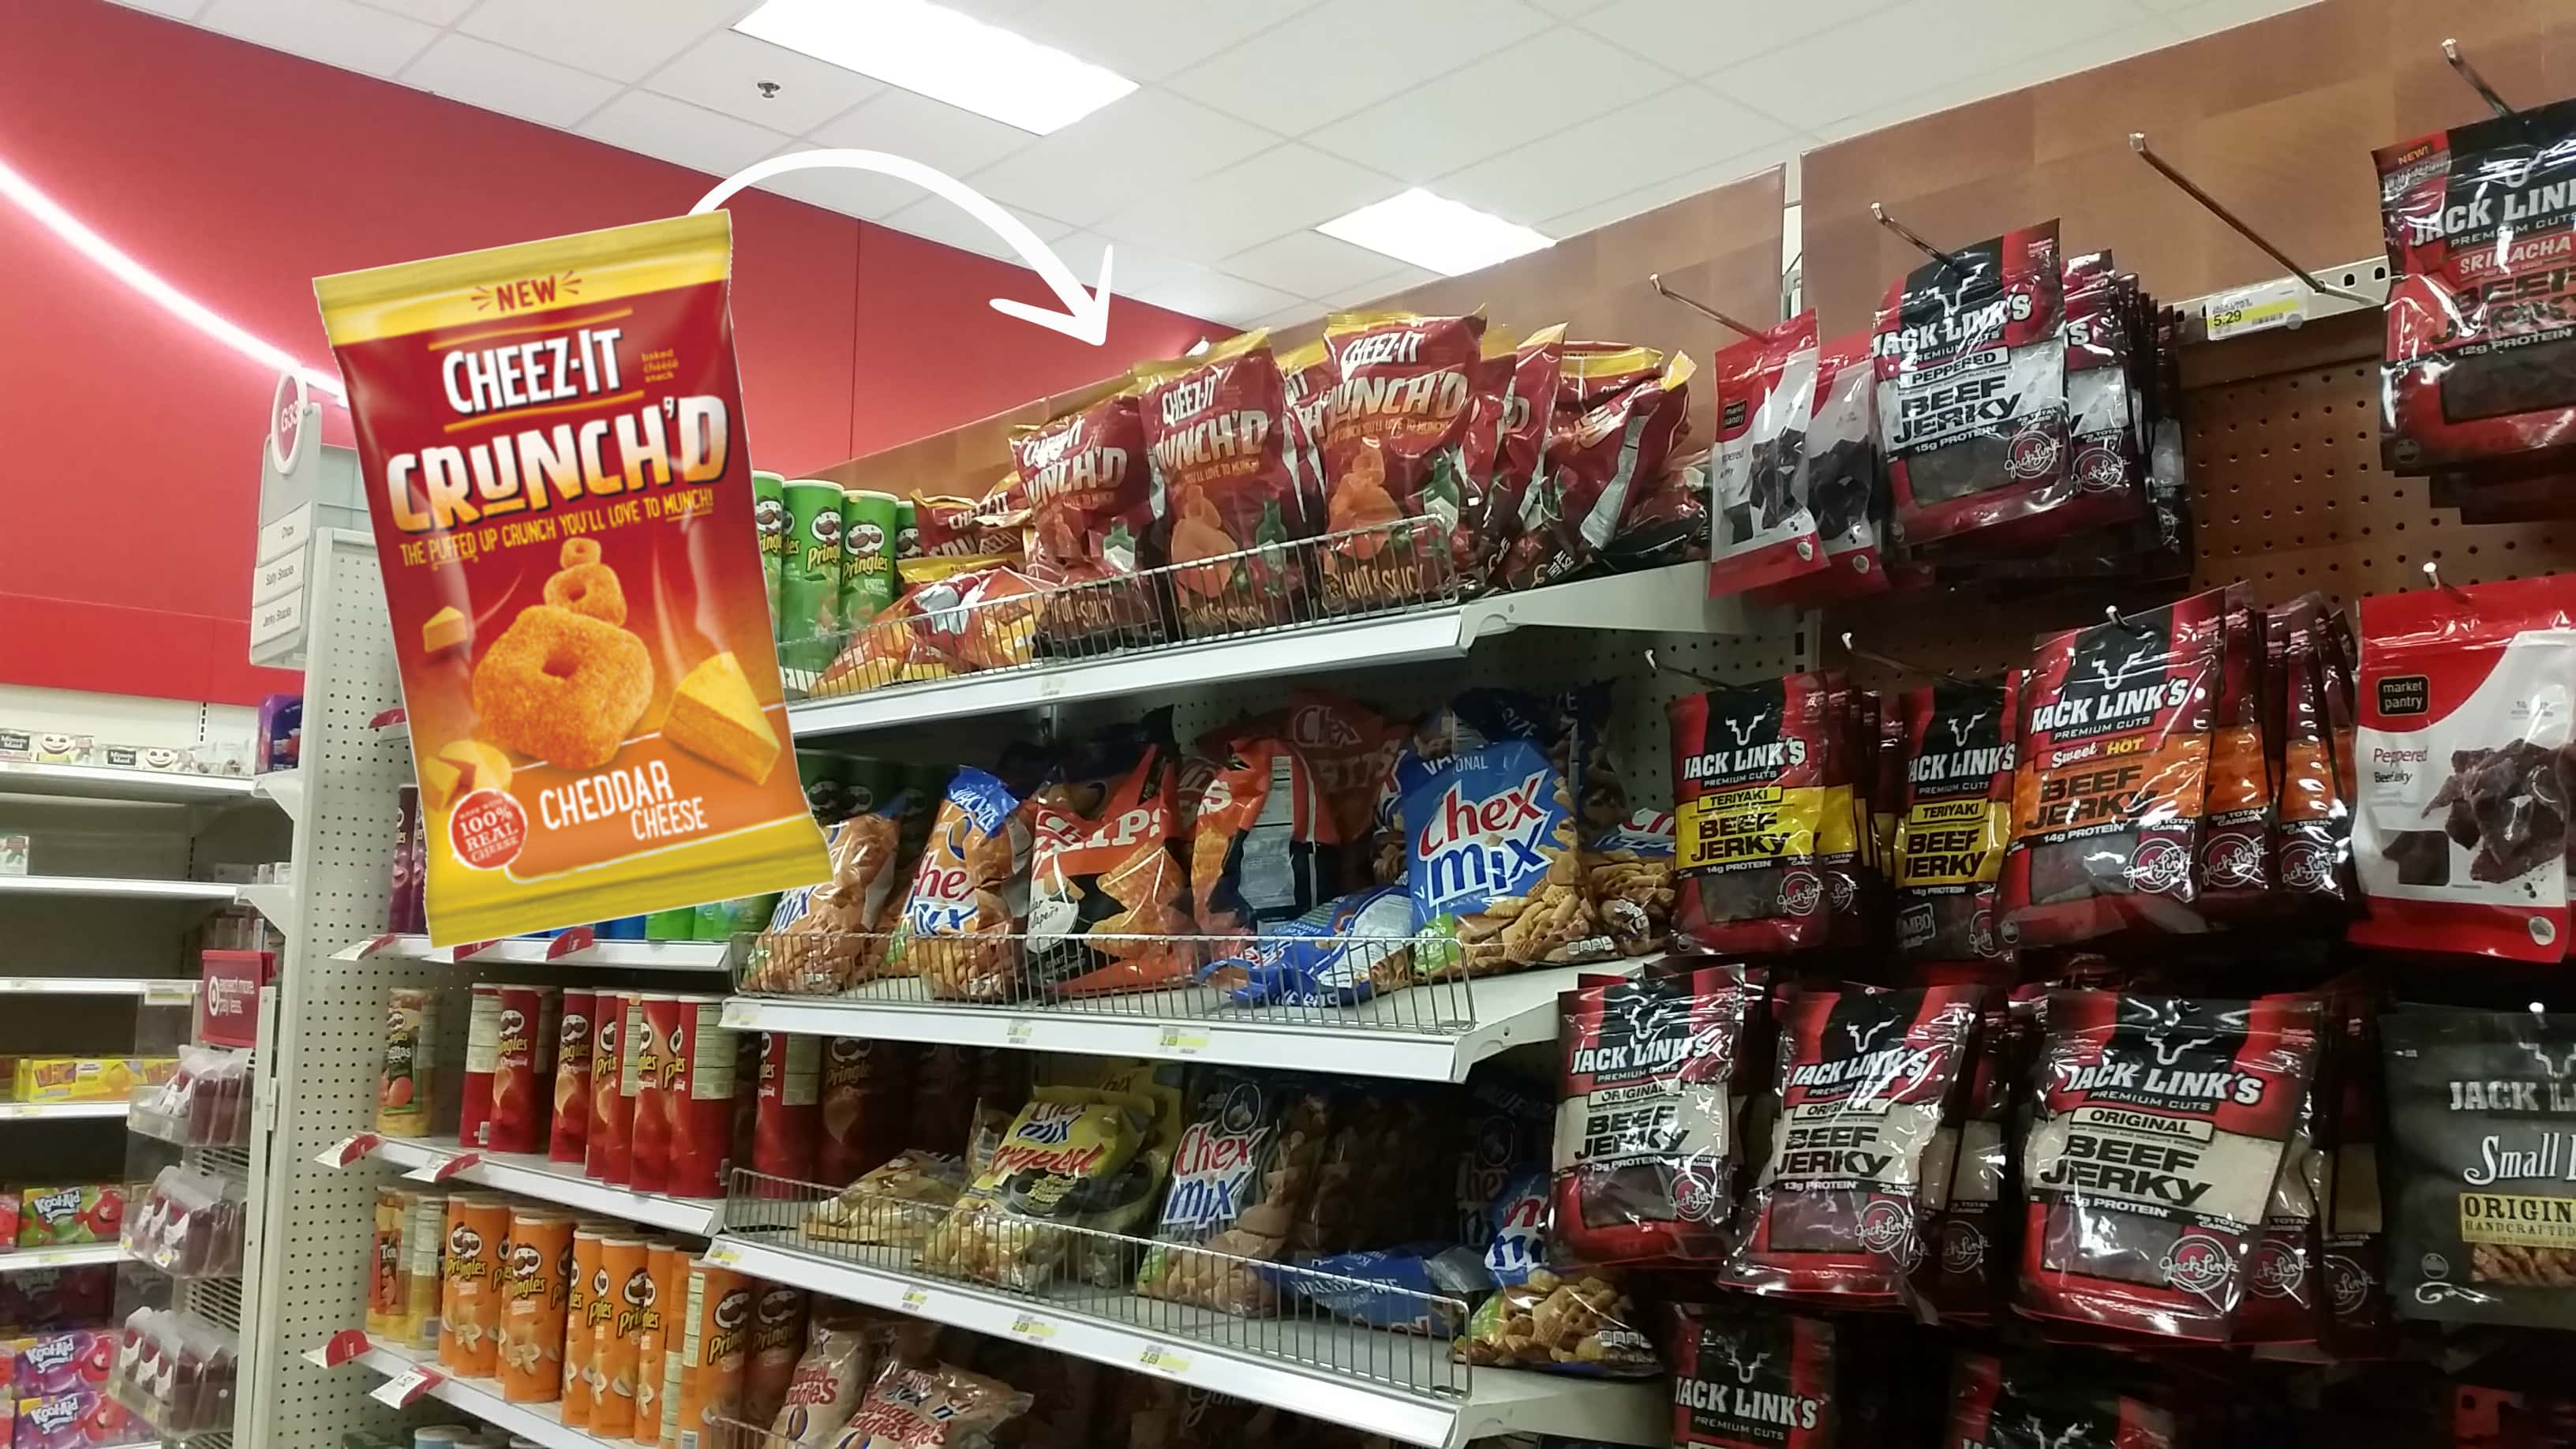 cheez it crunchd at target